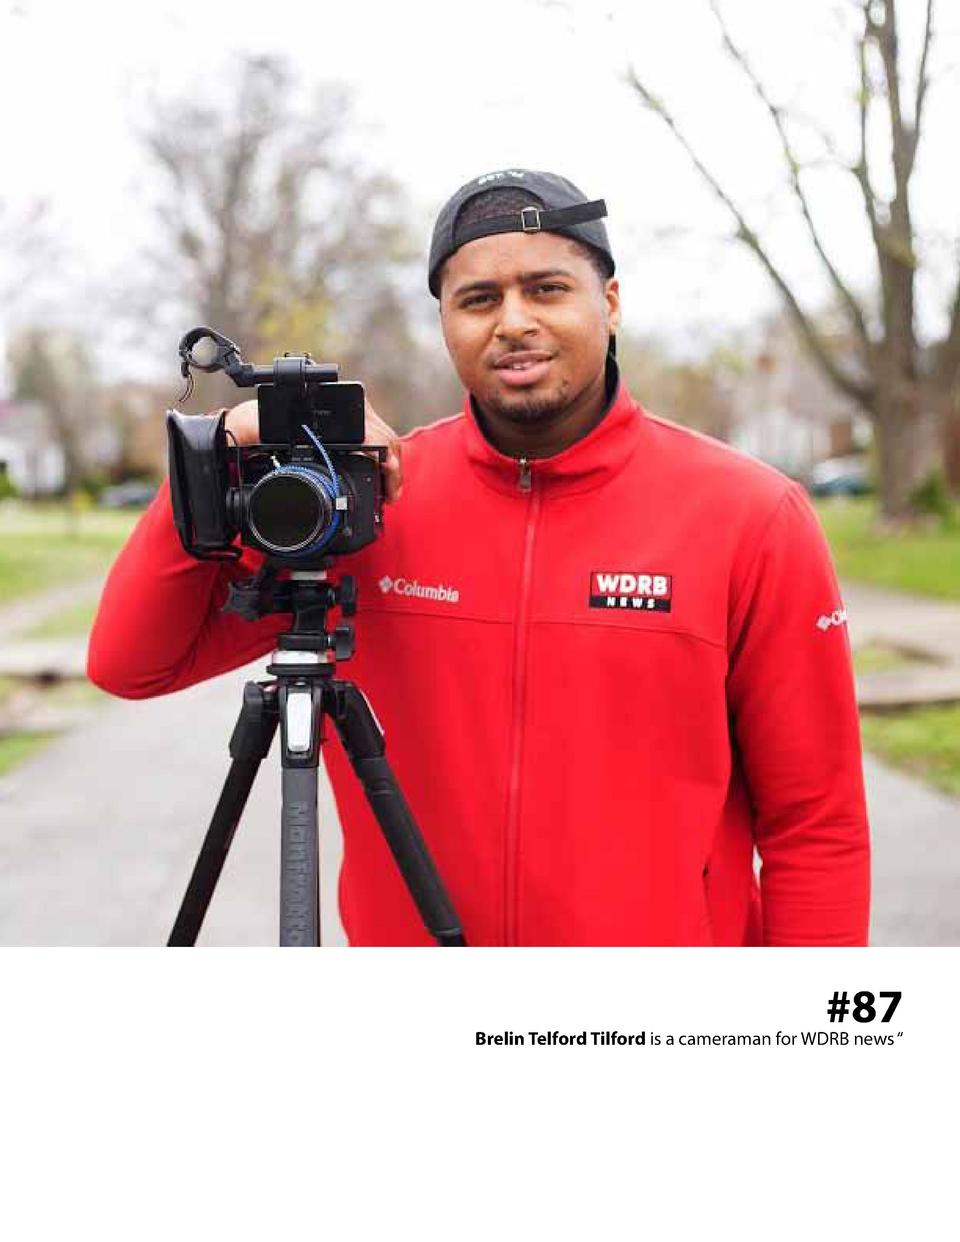 87  Brelin Telford Tilford is a cameraman for WDRB news